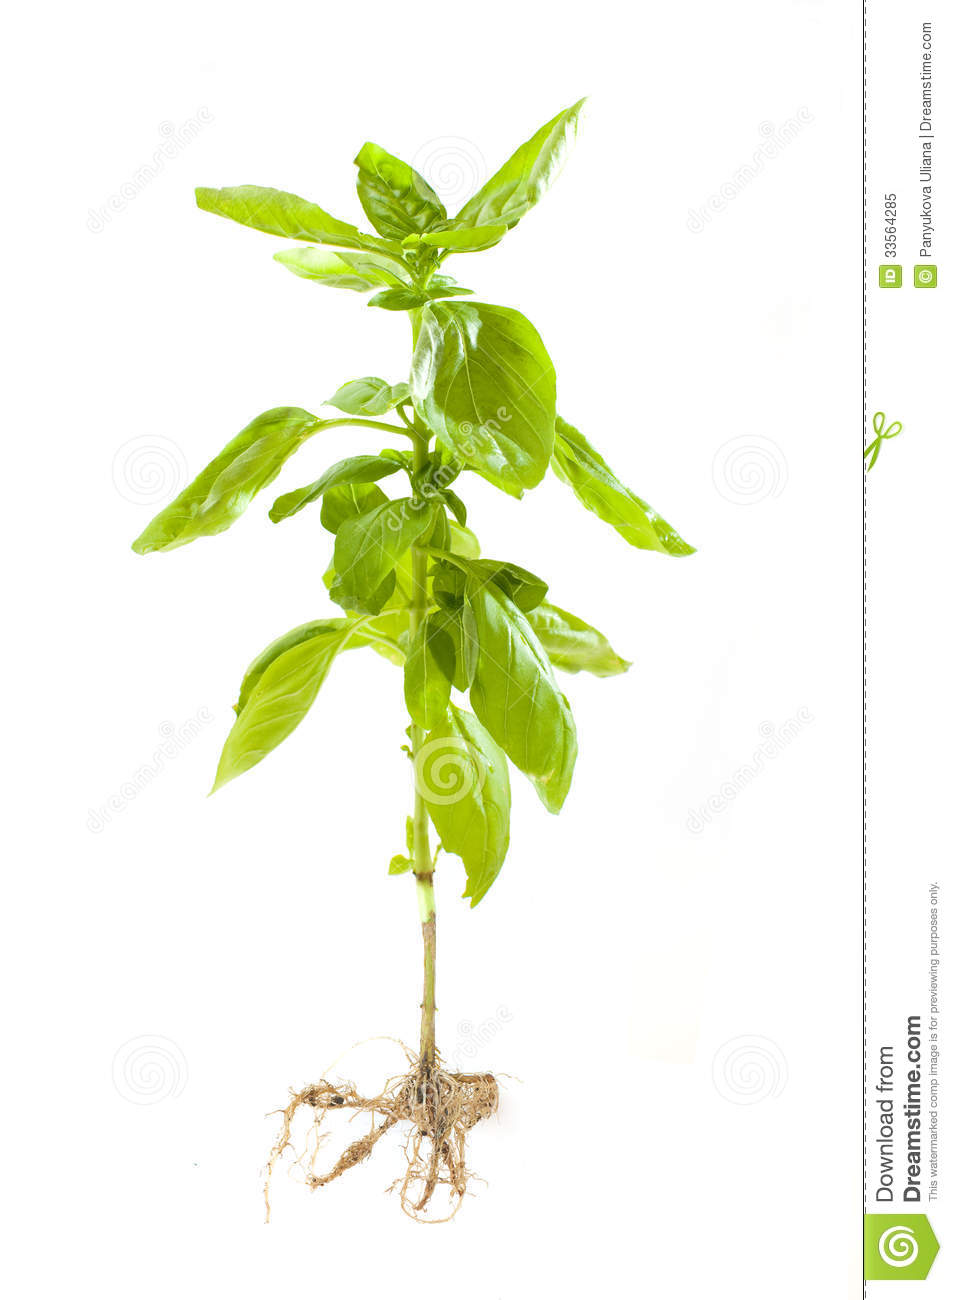 Basil Plant With Roots Royalty Free Stock Photo - Image: 33564285